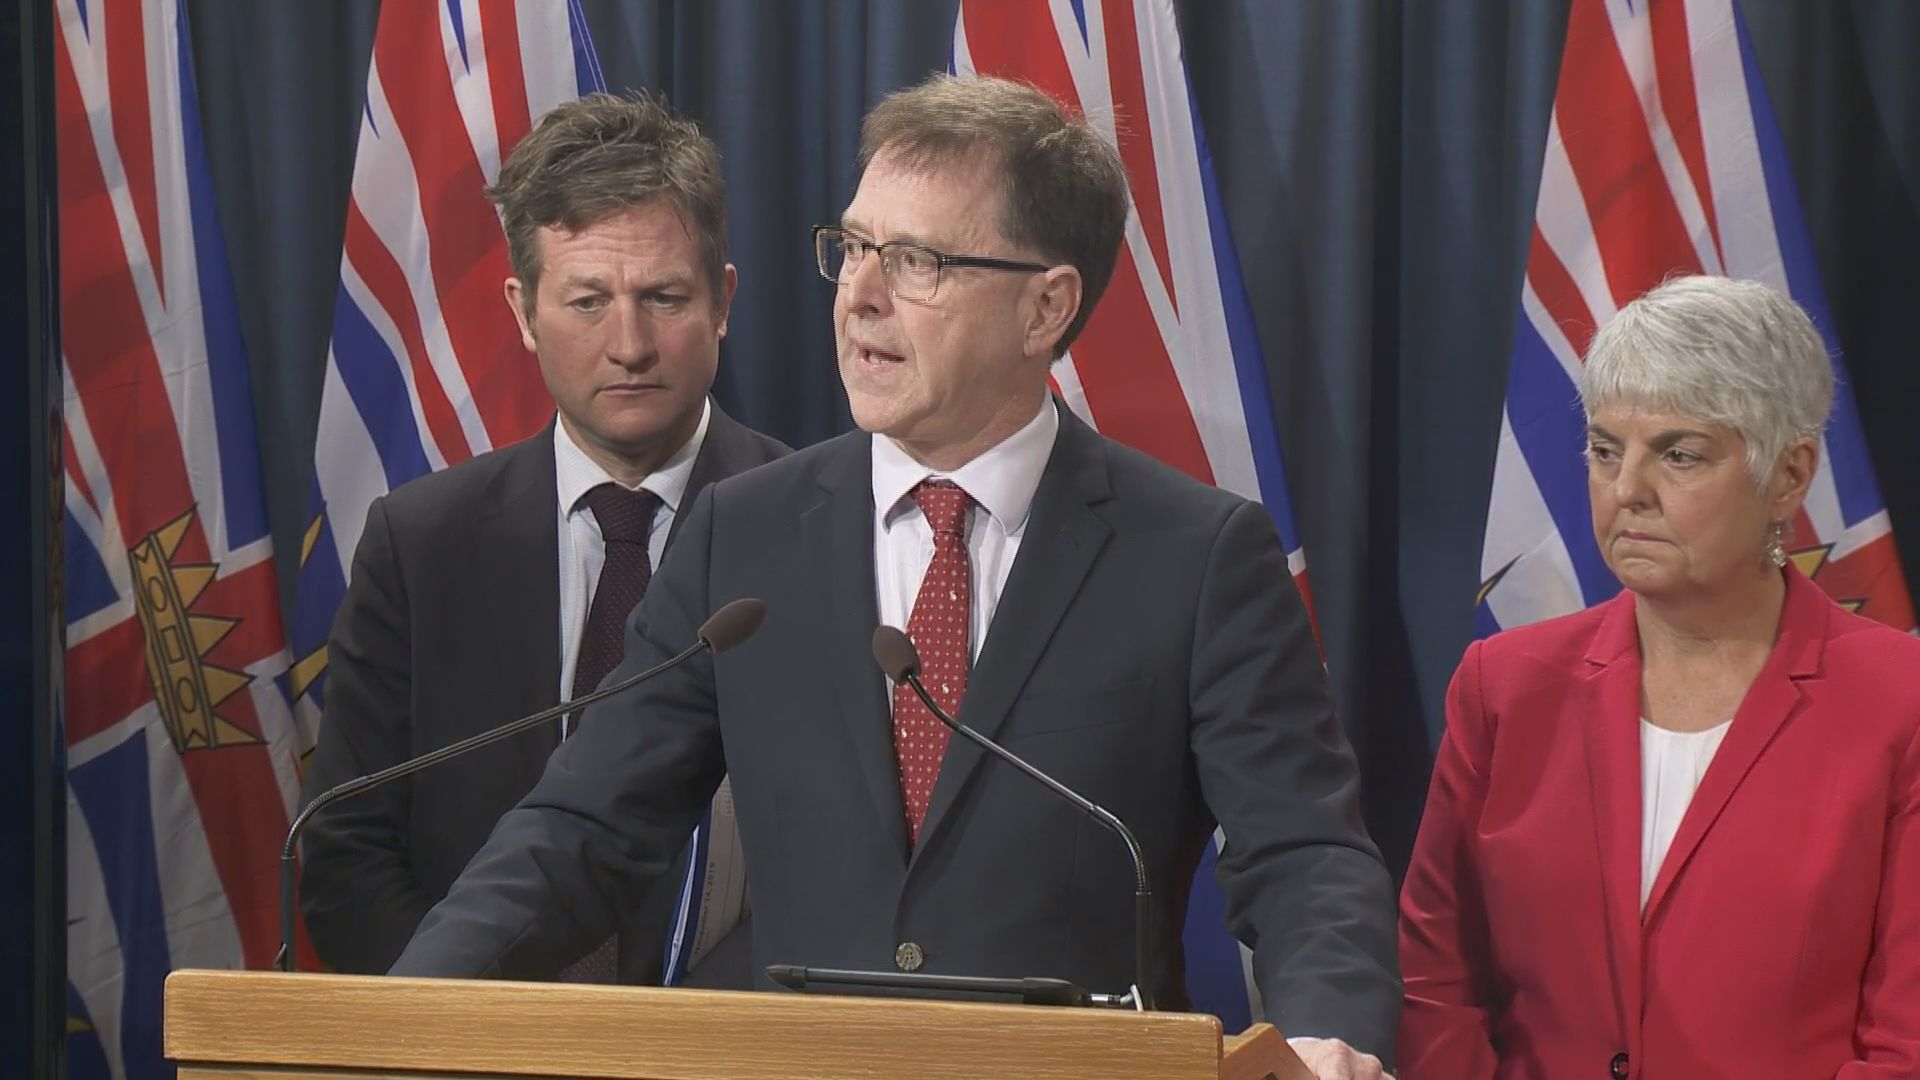 B.C. government announces major plan to crackdown on youth vaping